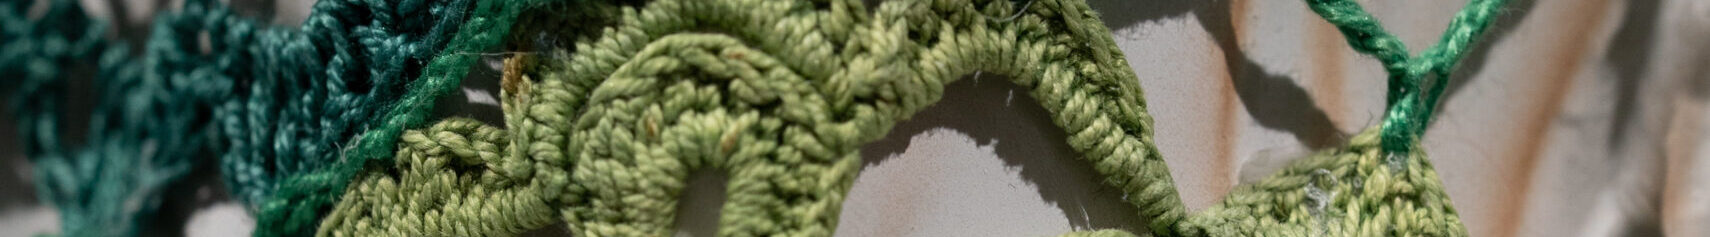 Close-up detail of a larger artwork shows an off-white ceramic surface that is covered by panels of crocheted yarn in emerald and citron green.